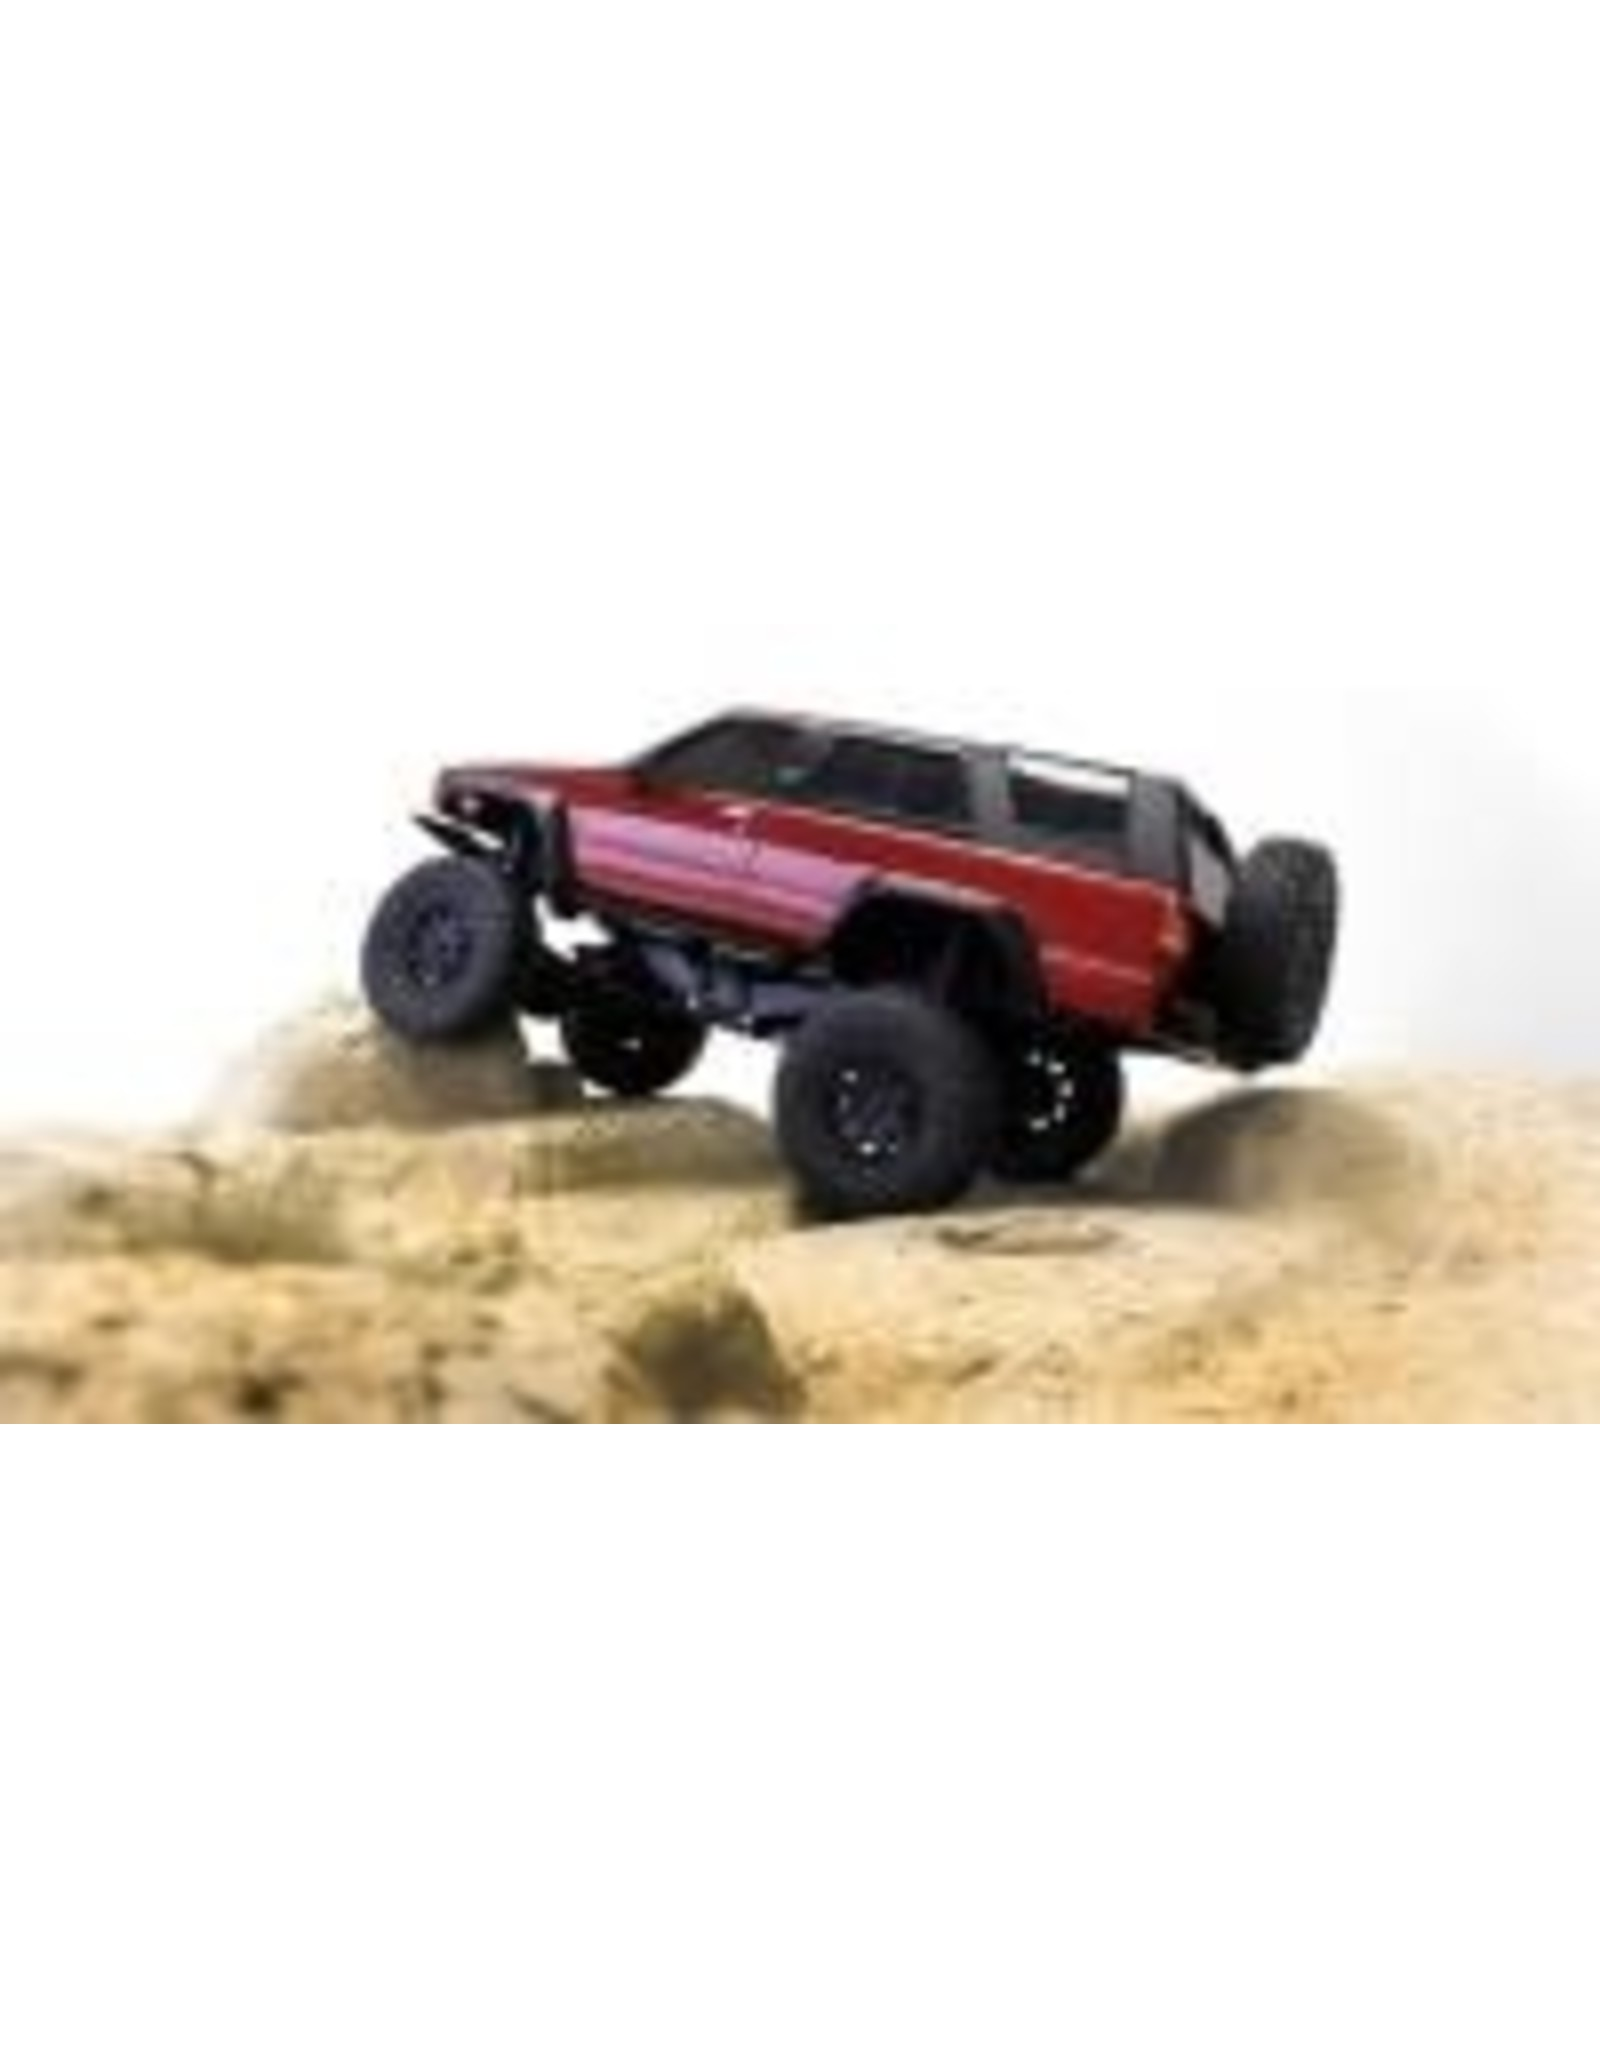 Kyosho Kyosho Mini-Z 4x4 Stackable Terrain (5pcs) (MXW006)